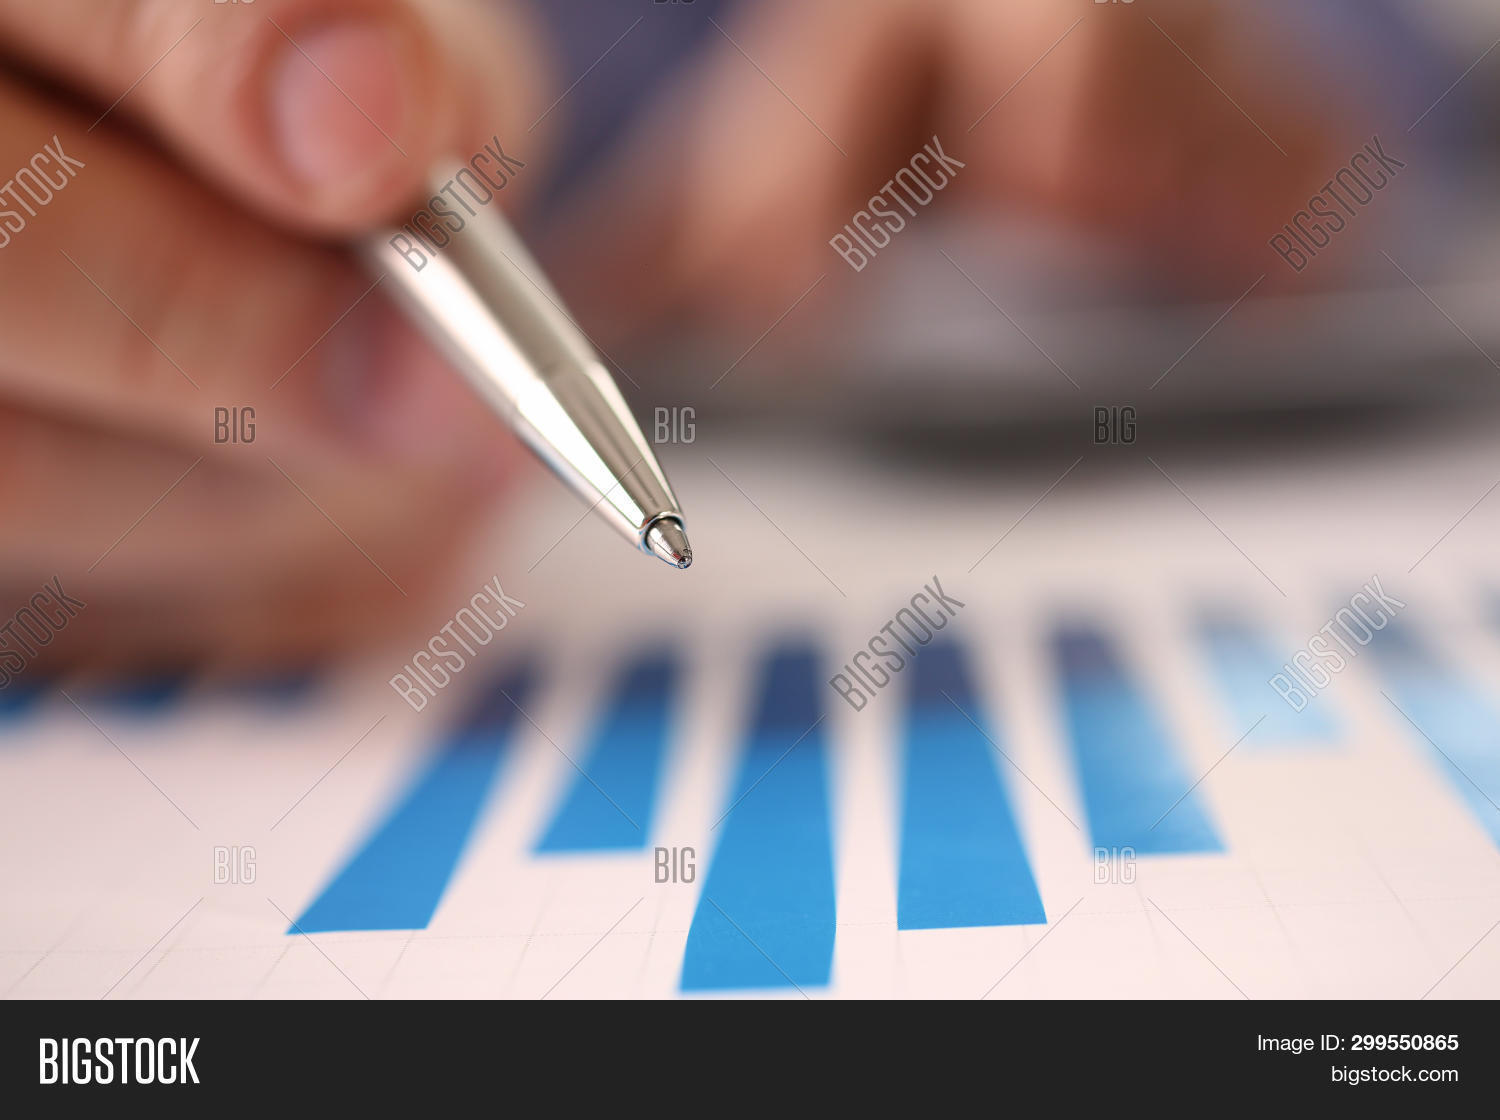 accountant,accounting,analysis,analyzes,audit,balance,budget,business,businessman,busy,calculate,caucasian,chart,check,closeup,company,cost,counting,credit,desk,economy,expense,expertise,finance,financial,graph,growth,hand,hold,income,loan,macro,man,manager,paper,payment,pen,performance,person,planning,profit,report,revenue,risk,stationery,tax,vat,workplace,workspace